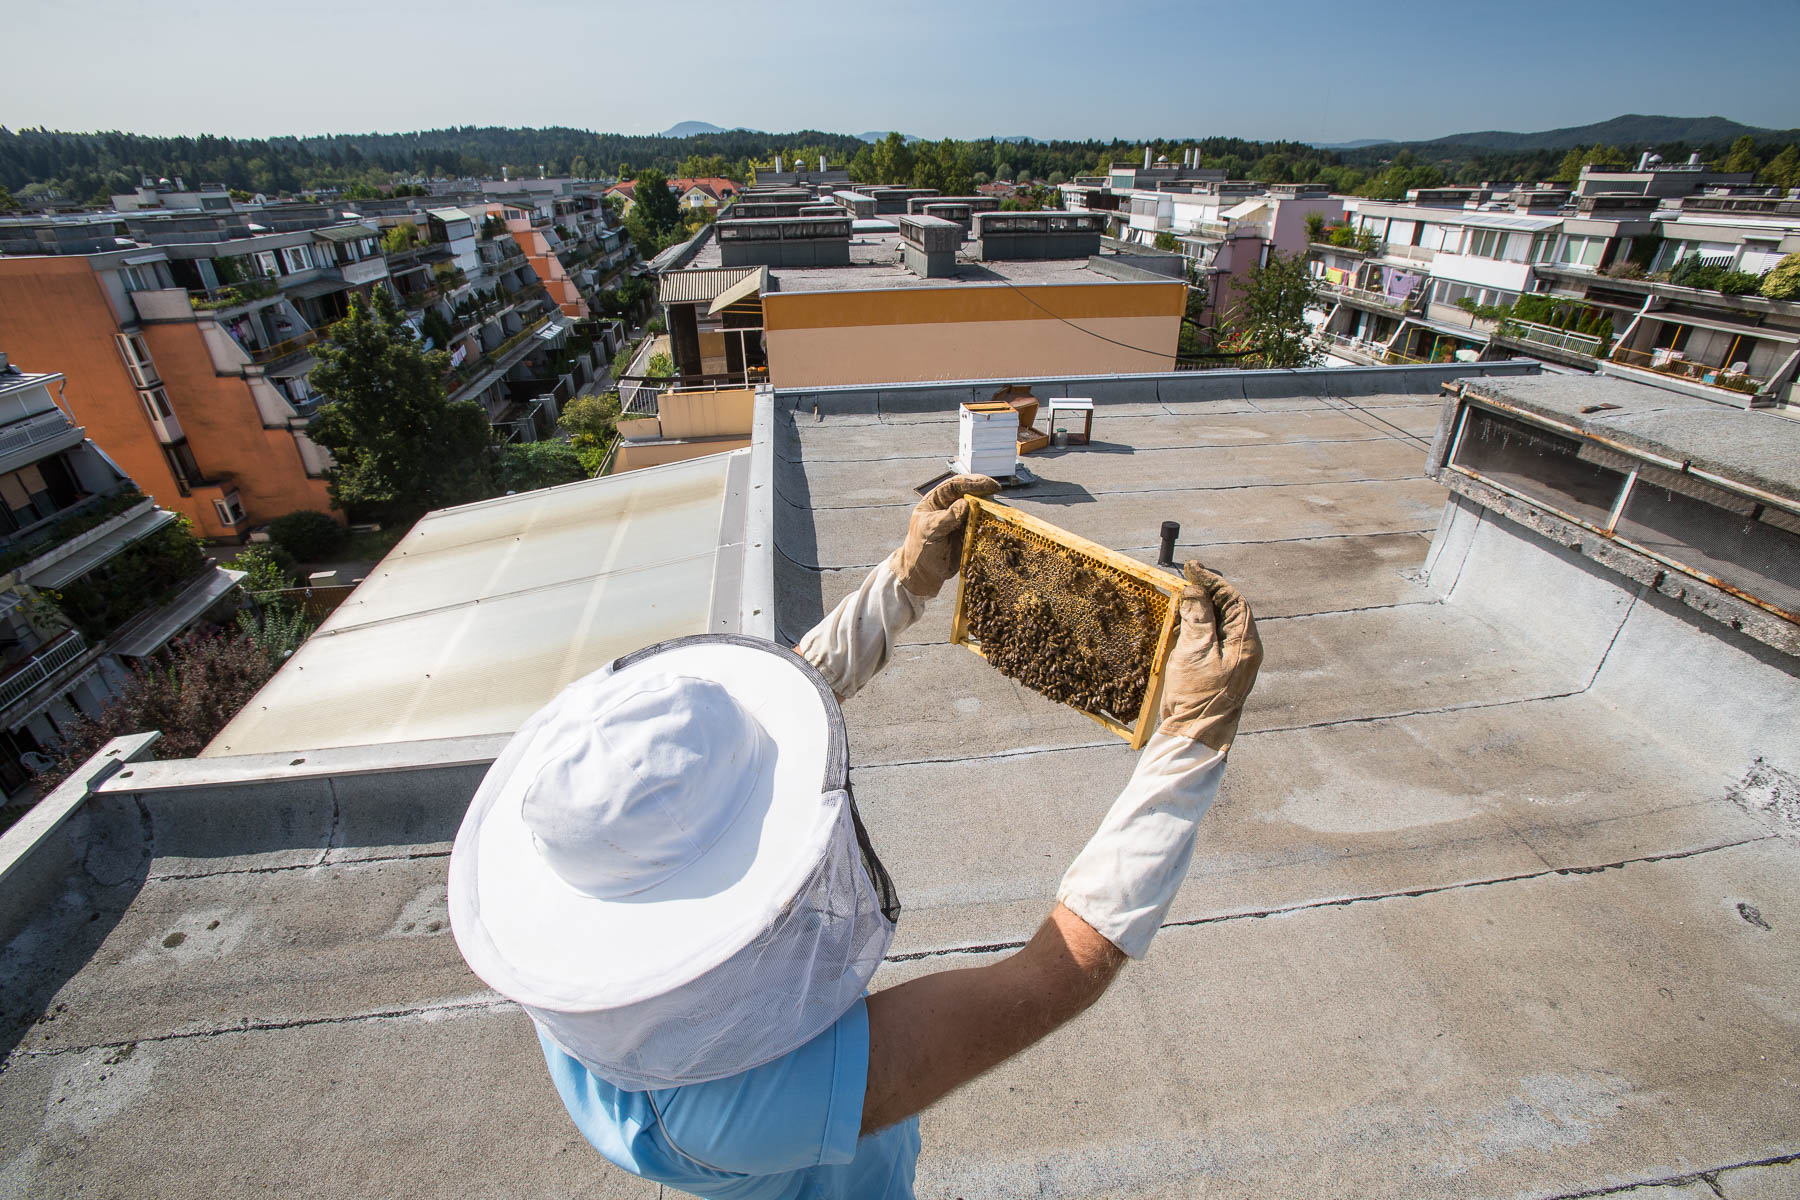 Urban beekeeper Peter Pečenko inspects beehives on the rooftop of his apartment building in Koseze.